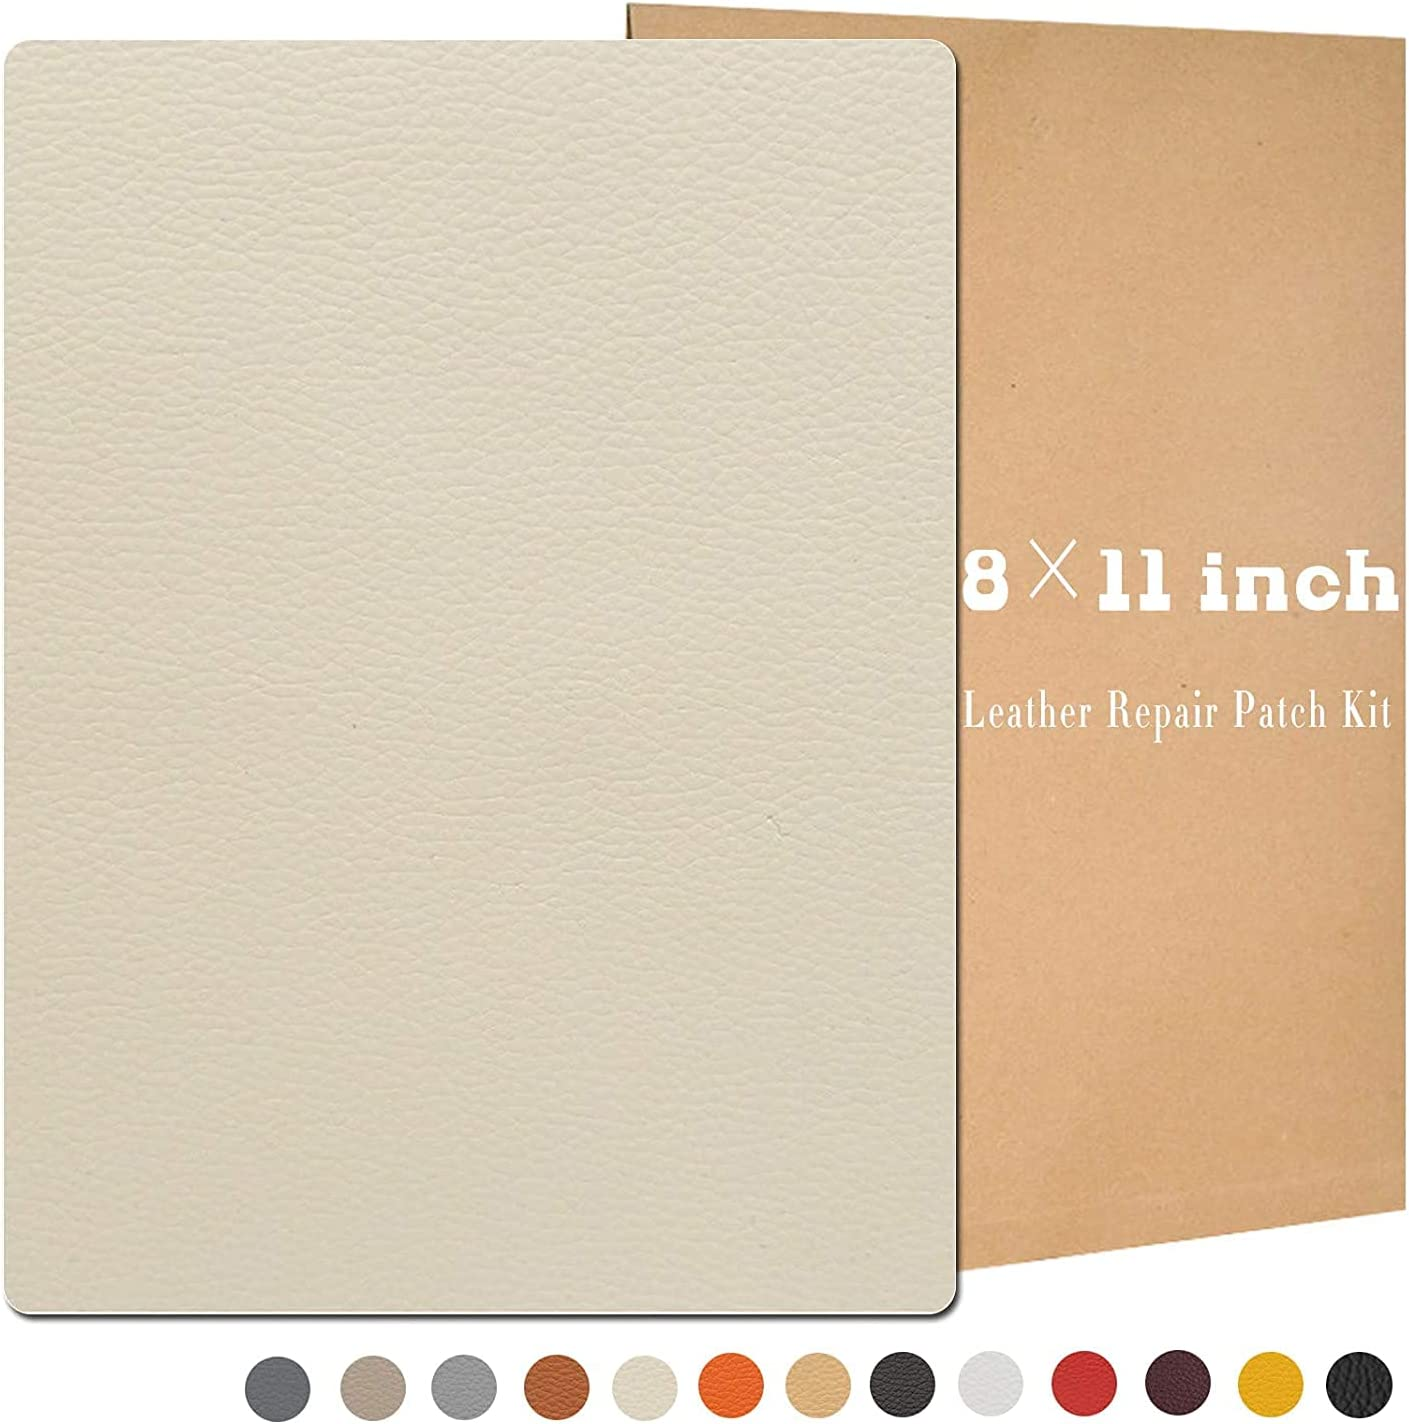 4 Pcs 8 × 11inch Leather Repair Patch Kit, Self-Adhesive Sticker for Leather and Vinyl Repair, First Aid Kit for Furniture, Sofas, Couch, Car Seat, Belts, Handbags, Jackets 7 Colors Available (Cream)